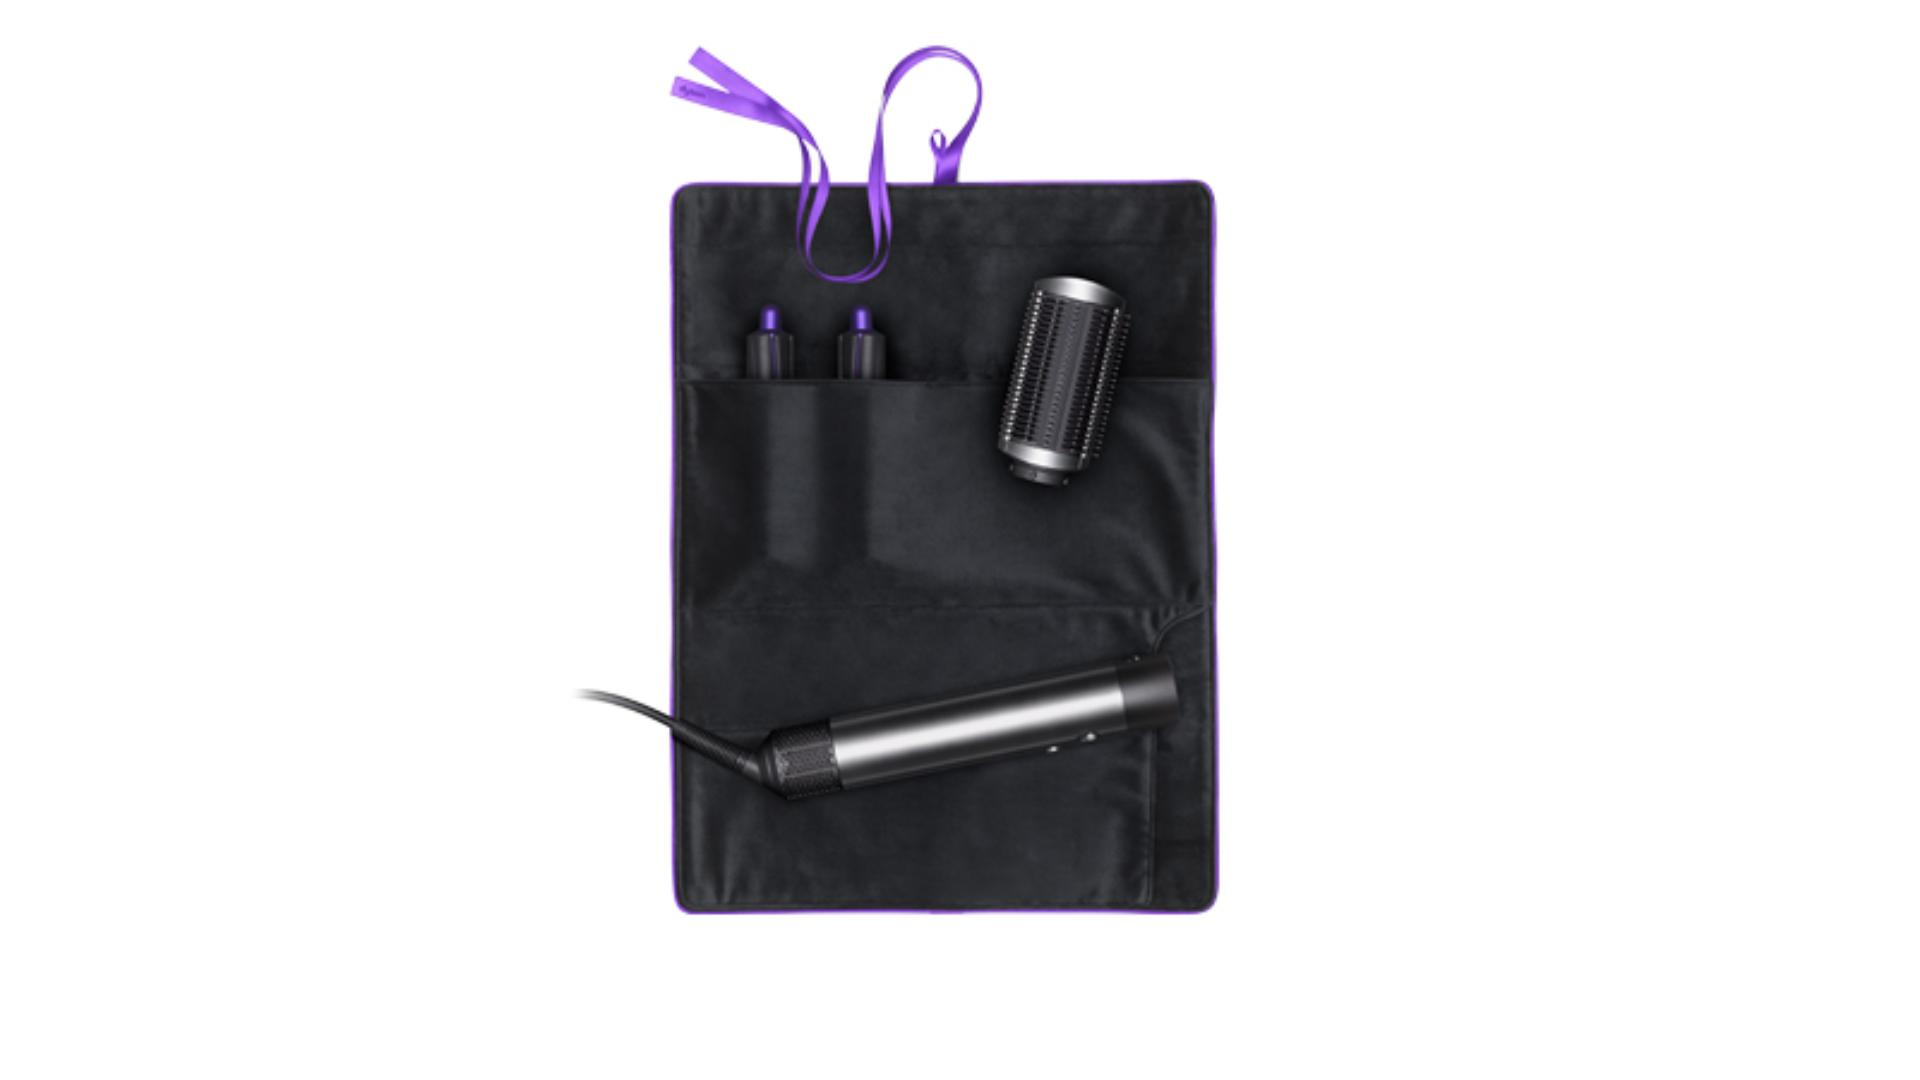 Black and purple Airwrap travel pouch